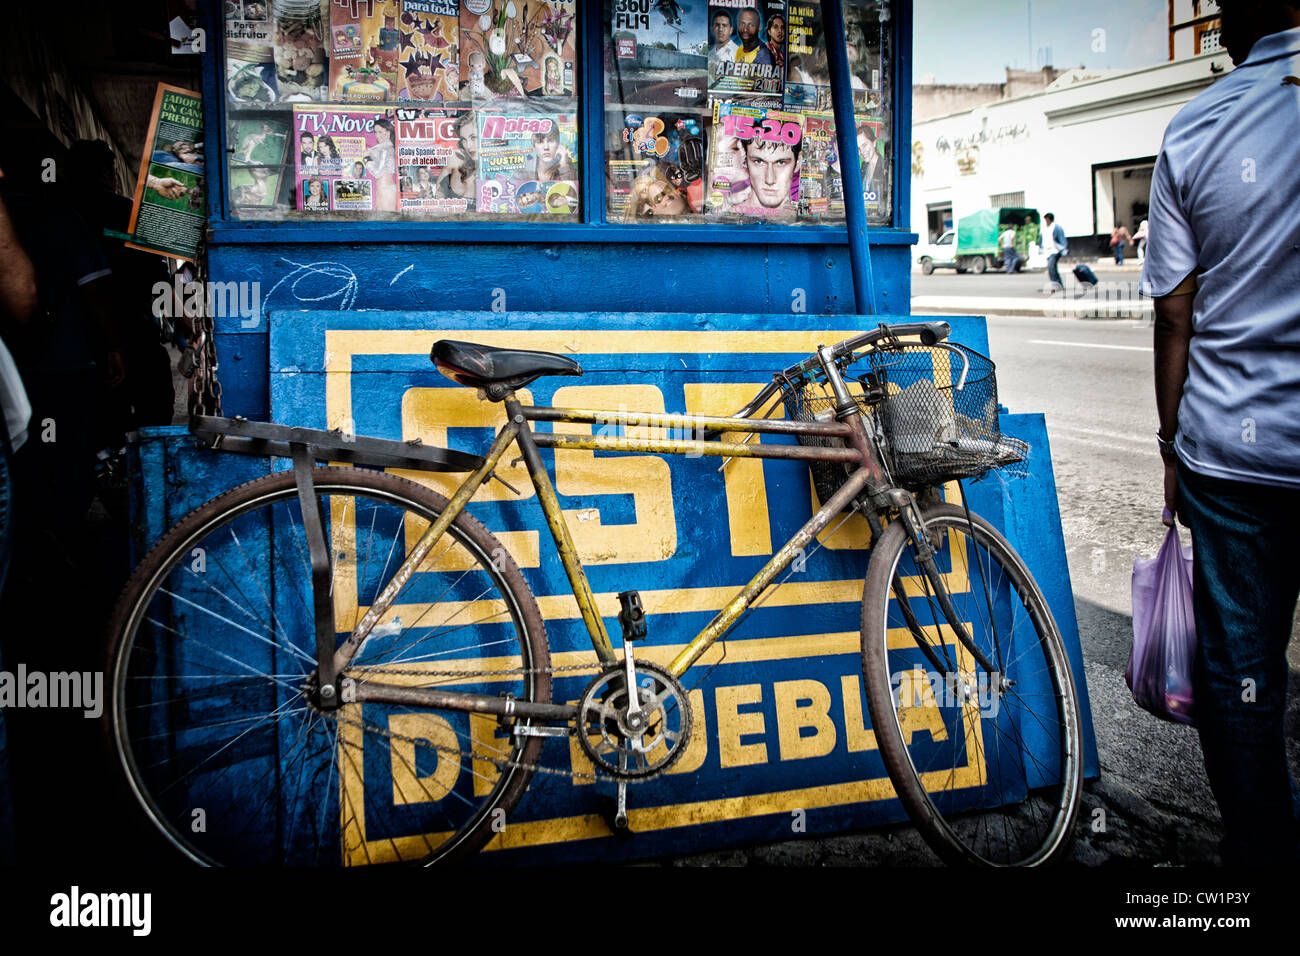 Bicycle leaning against a newsstand in Puebla, Mexico - Stock Image